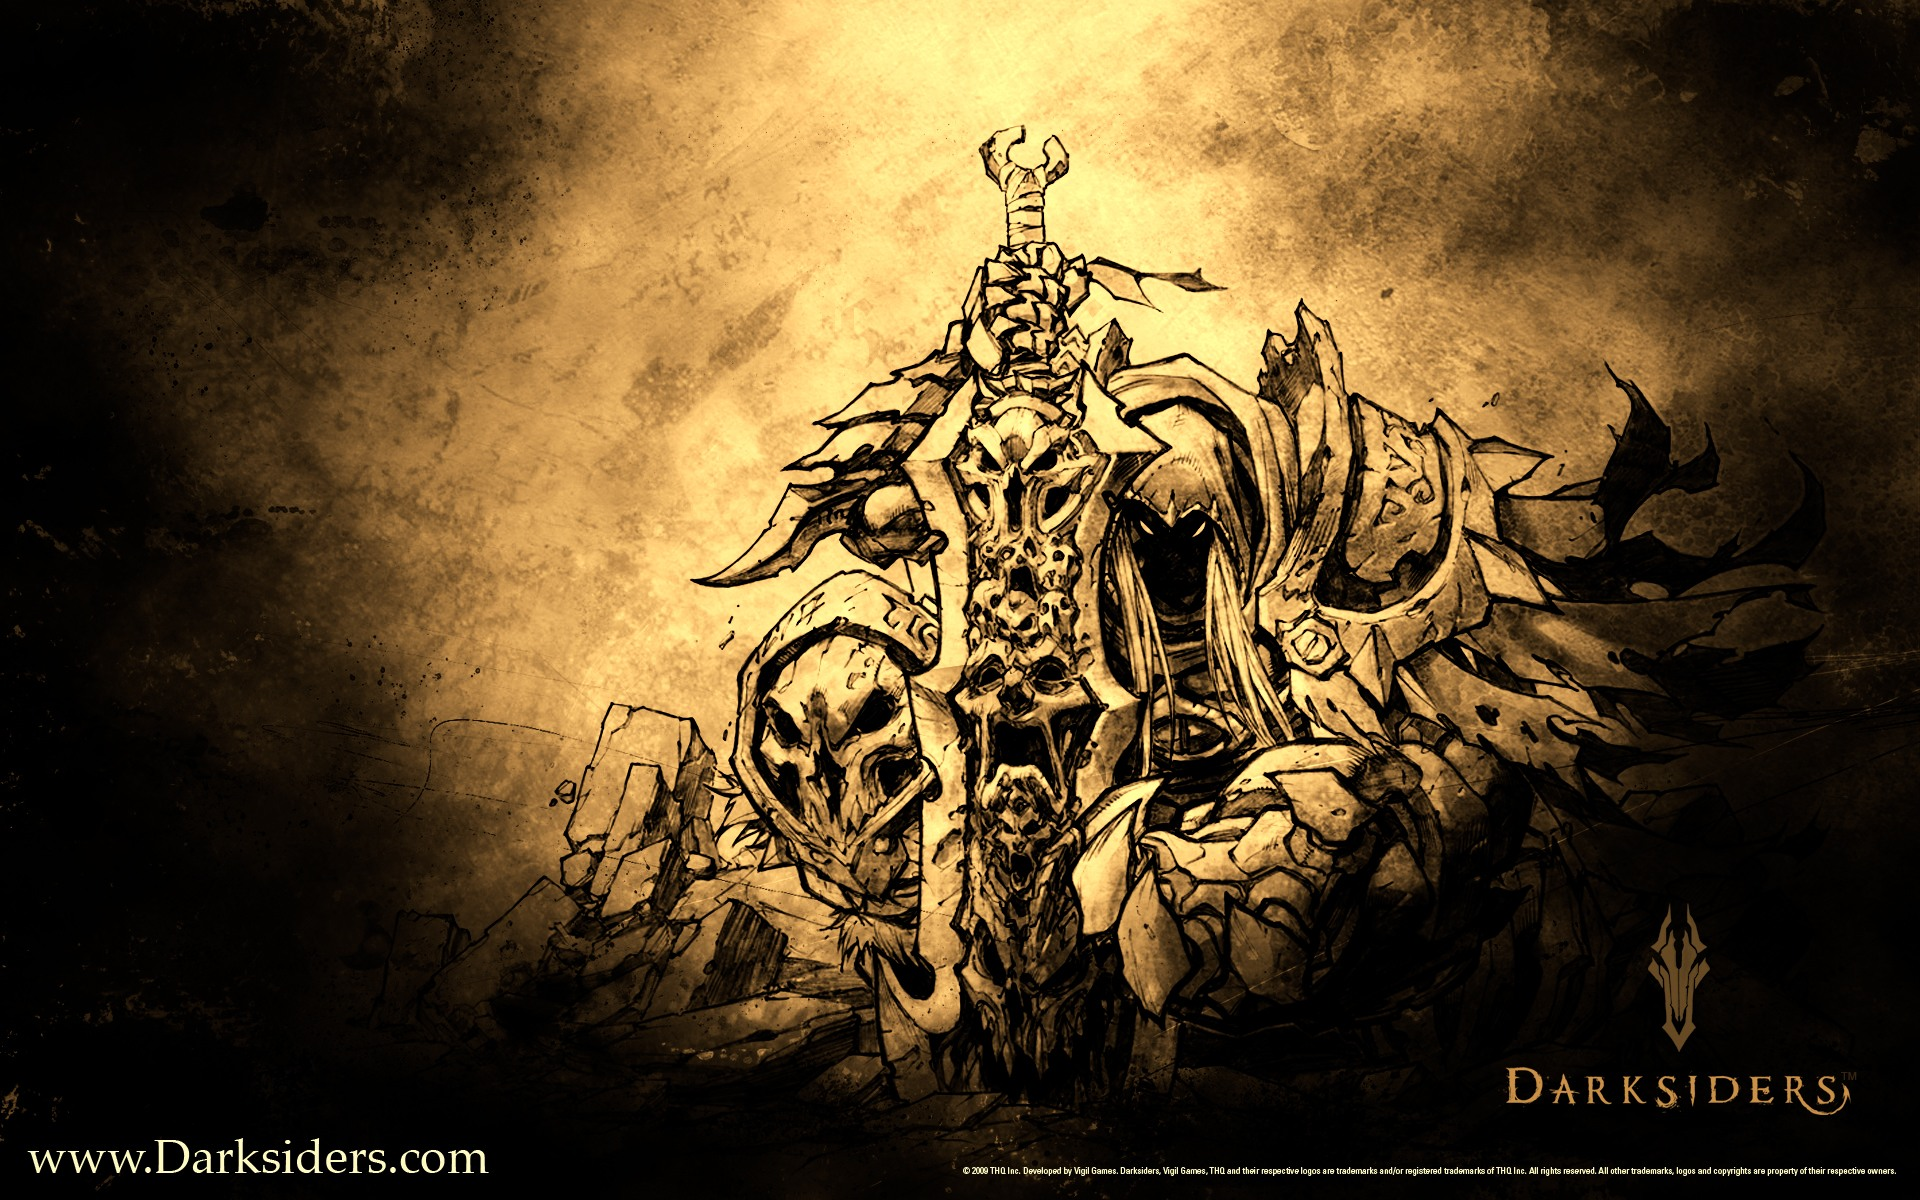 Darksiders   Artwork desktop wallpaper 1920x1200